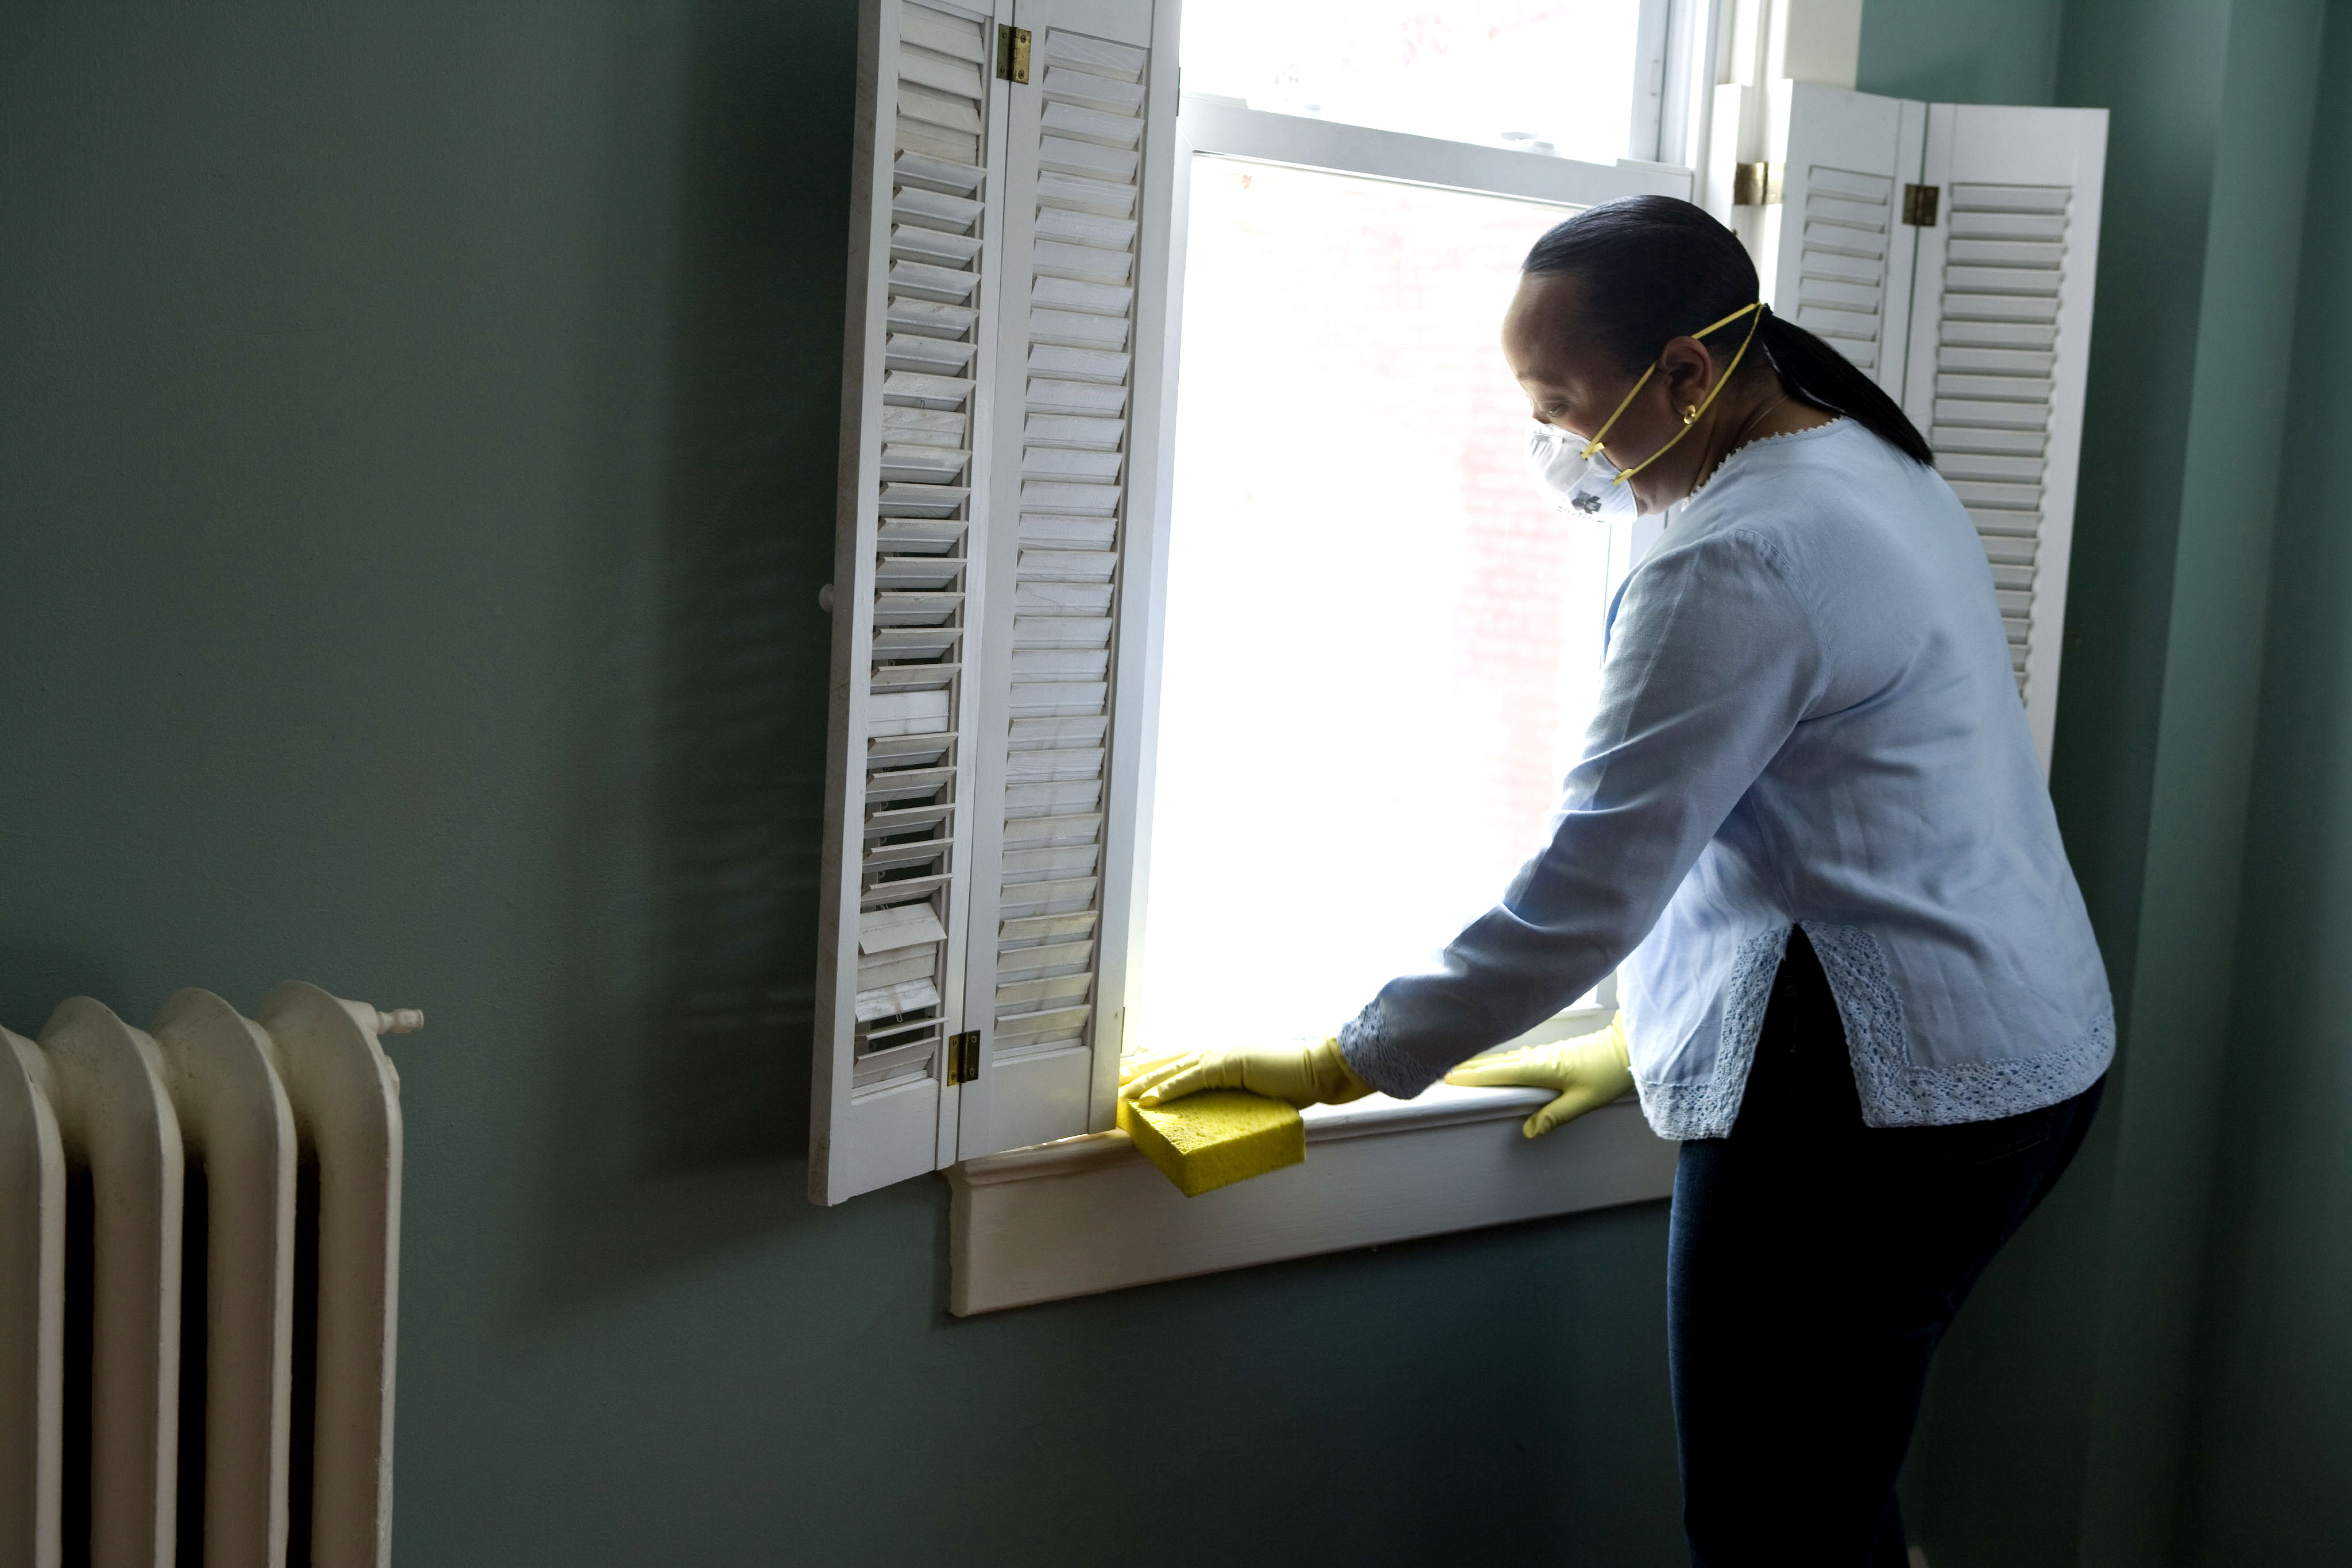 Free picture cleaning windows personal protective